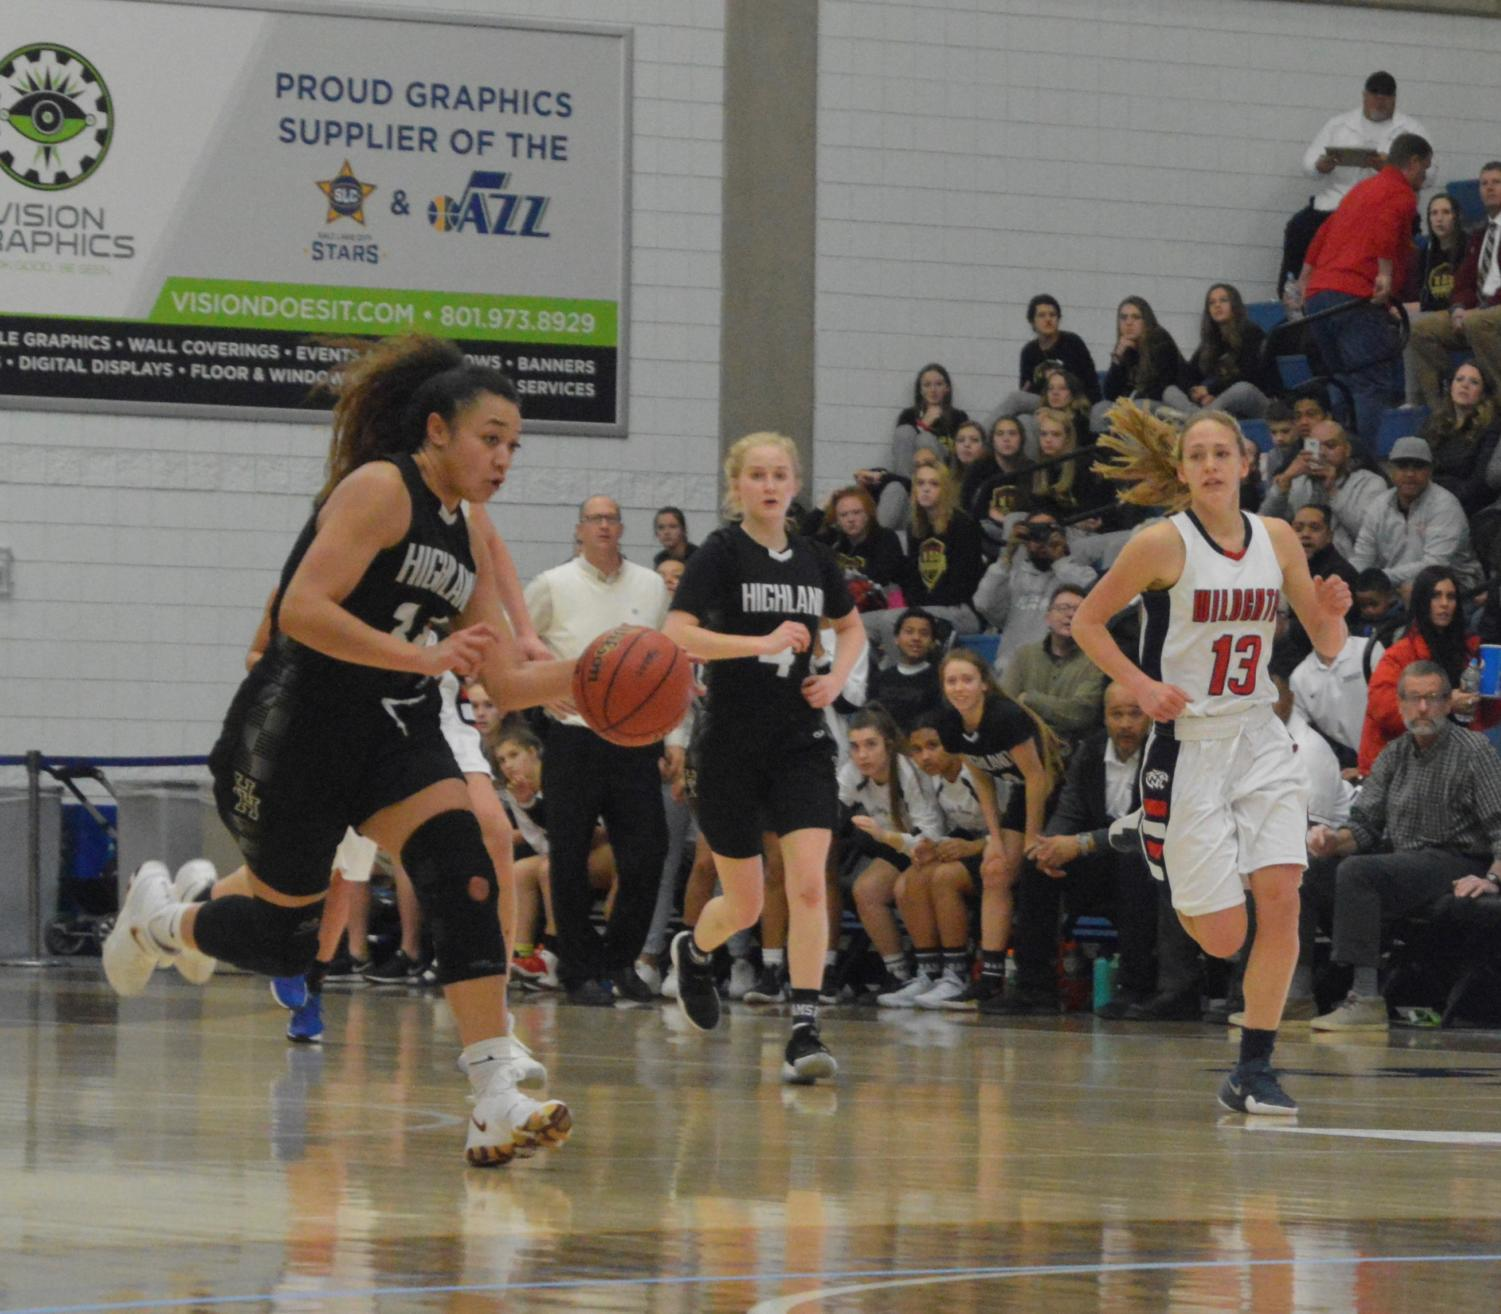 Senior Misini Fifita runs down the court in an attempt to score for Highland.